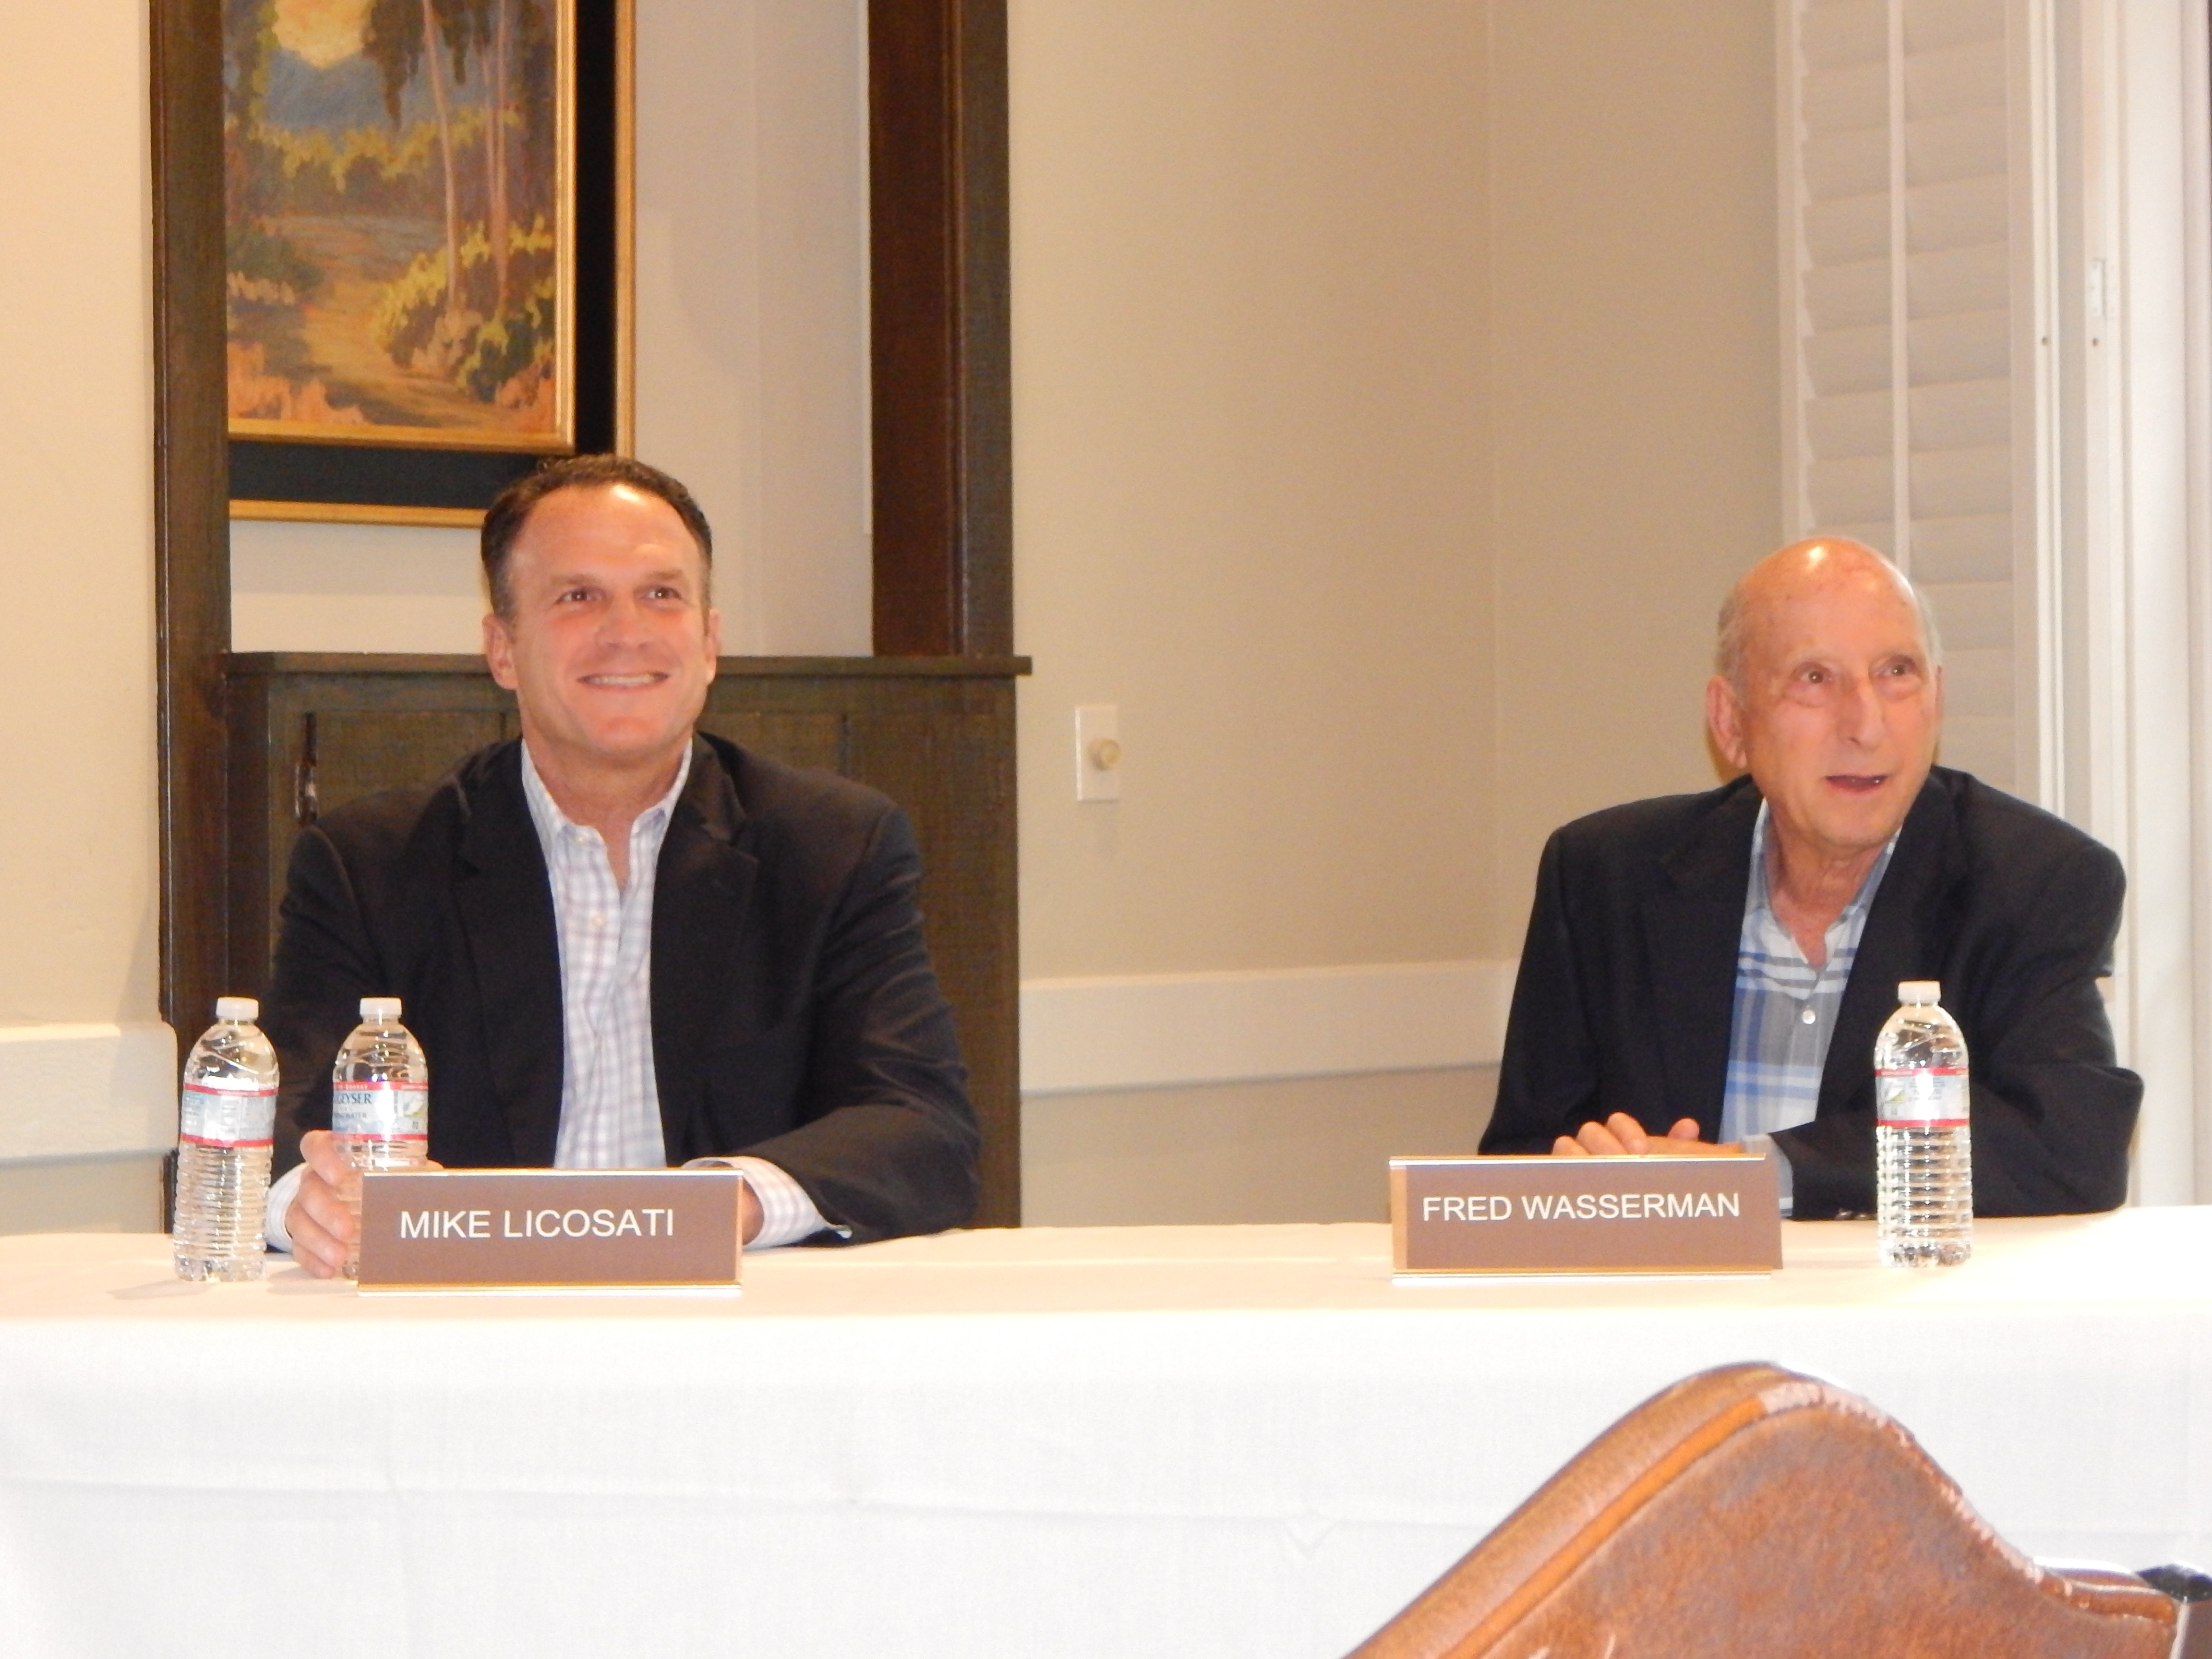 Mike Licosati, left, and Fred Wasserman will begin their three-year terms as Rancho Santa Fe Association directors July 2. File photo by Christina Macone-Greene